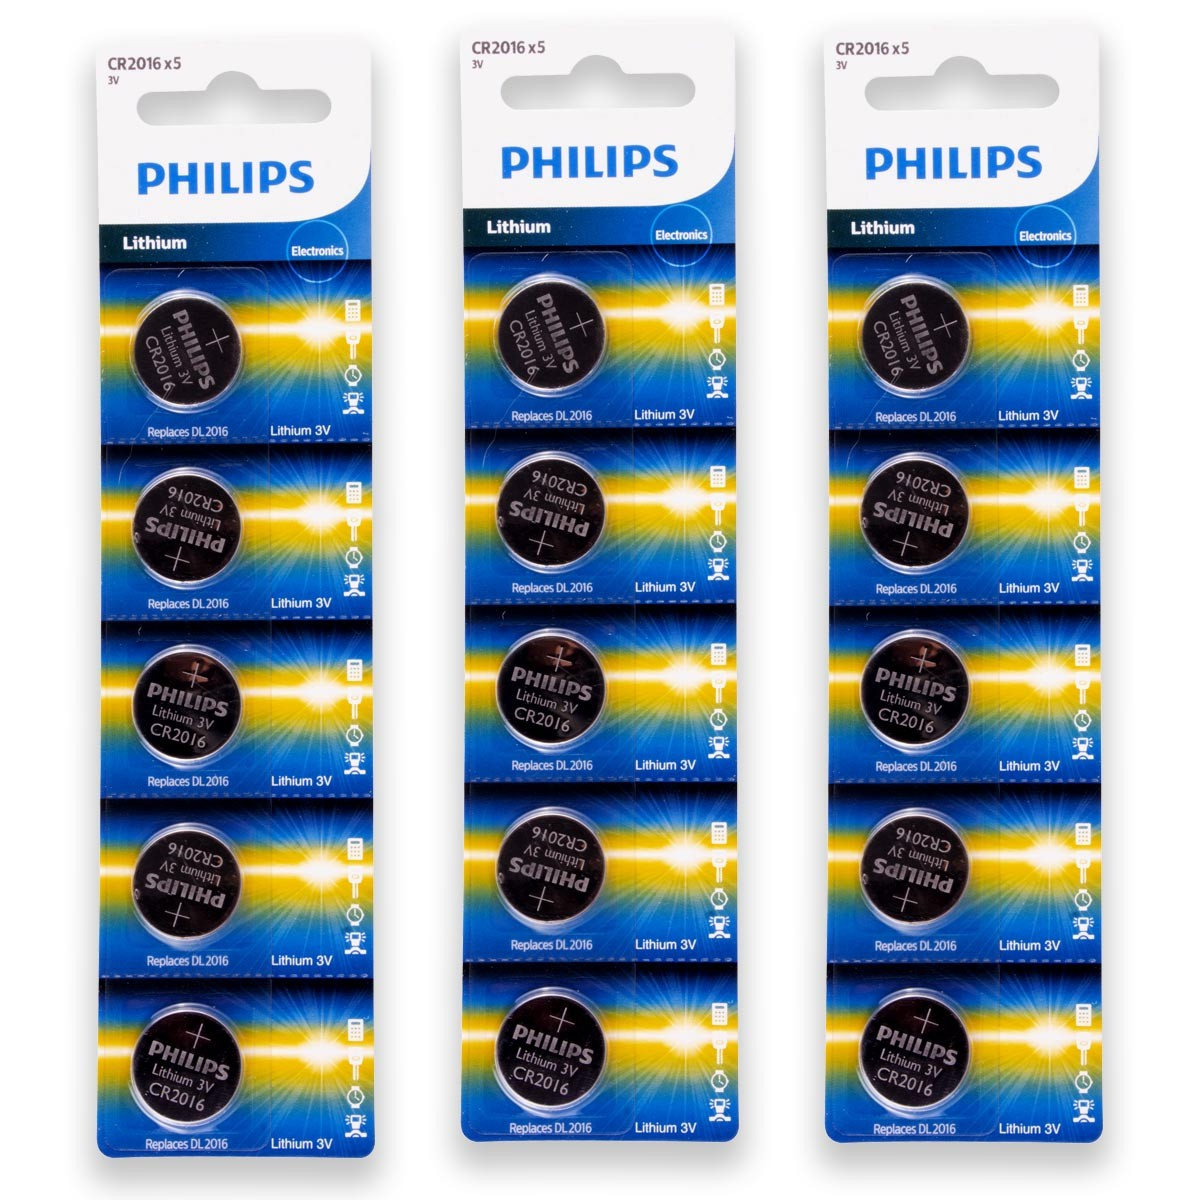 15 Pilhas PHILIPS CR2016 3v Bateria Original - 3 cartelas